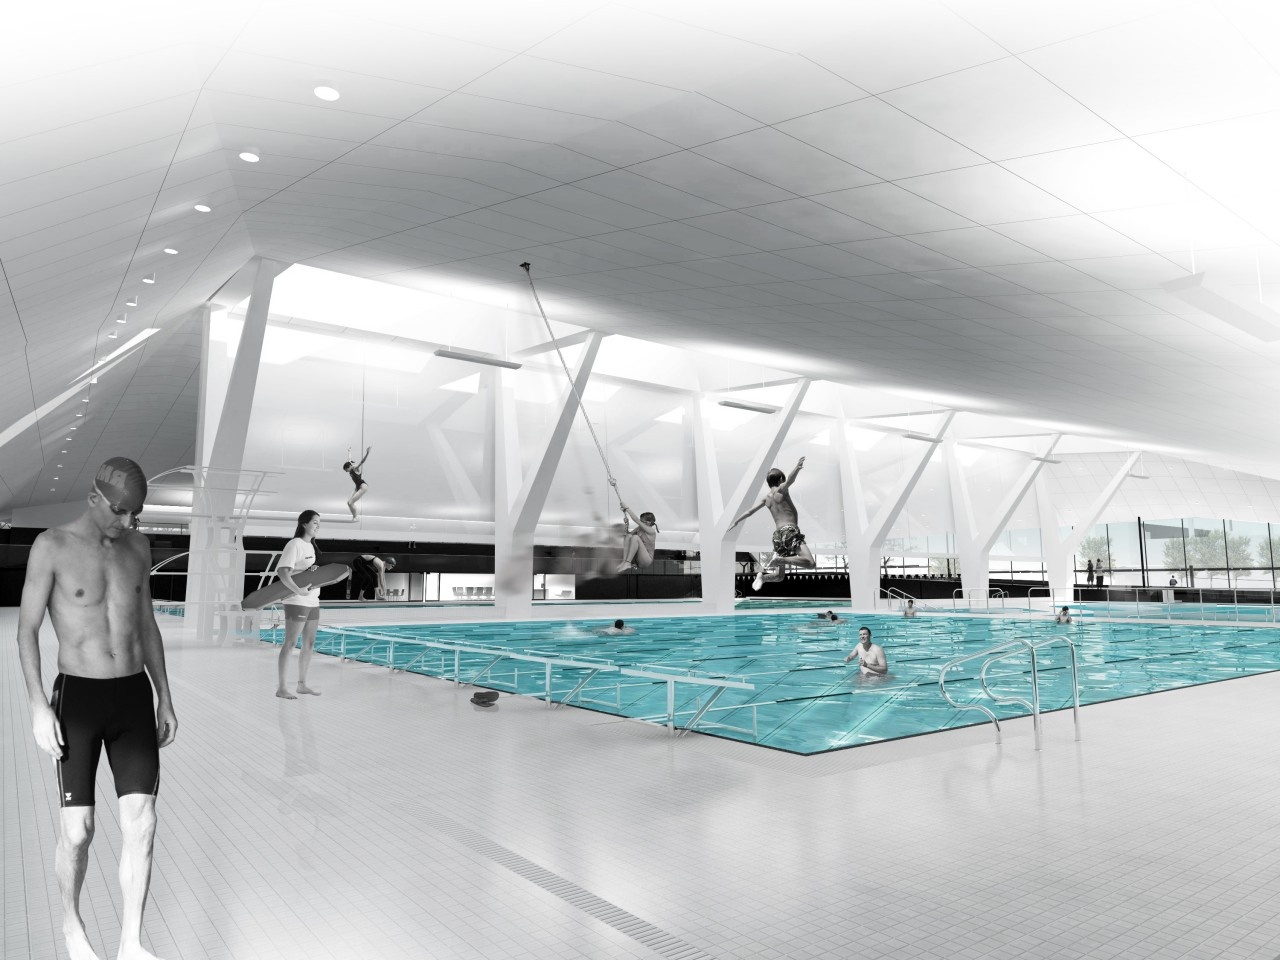 Ubc aquatic centre architectural design project vancouver for Pool design education